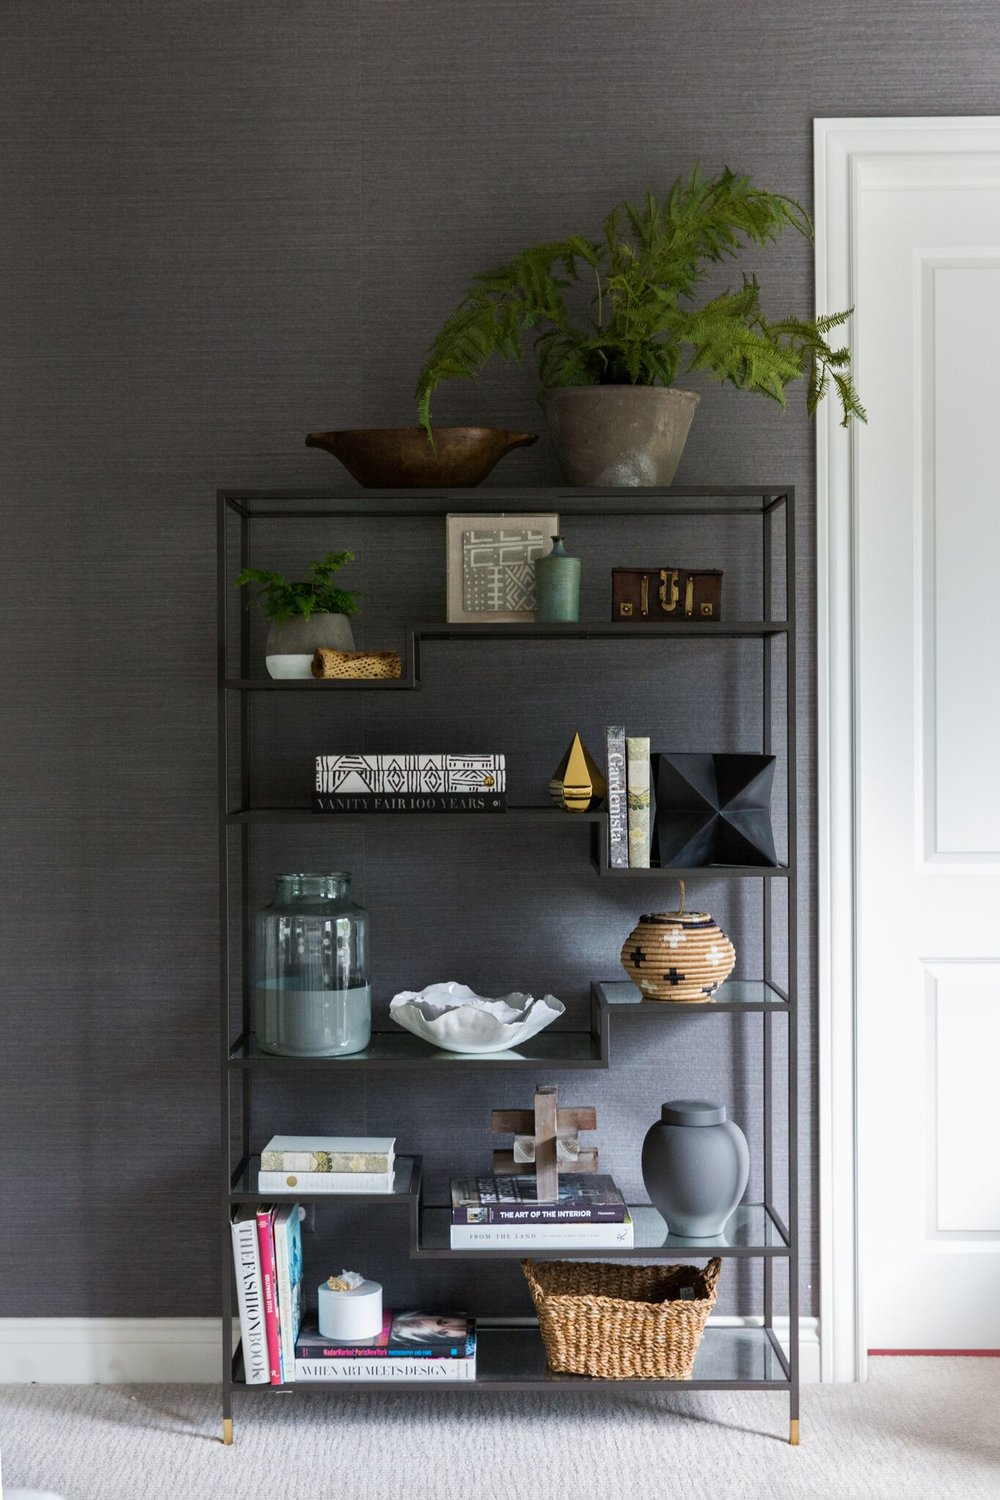 Eclectic Bookcase with Collected Display Pieces and Greenery